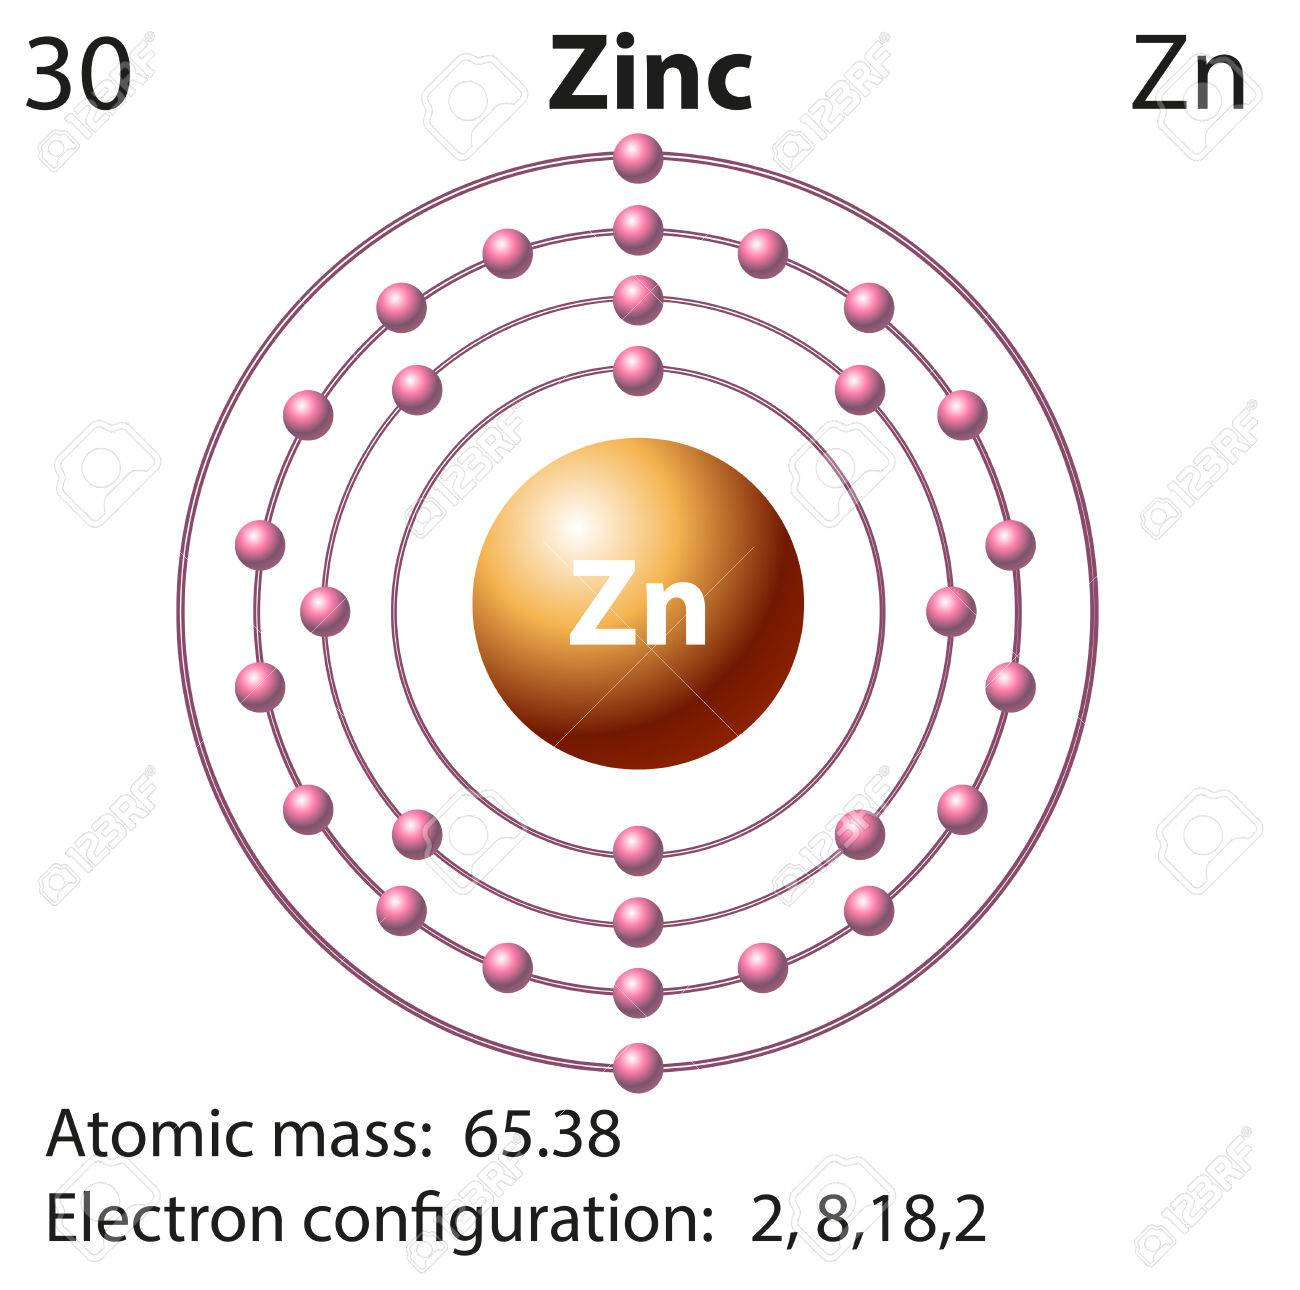 Symbol And Electron Diagram For Zinc Illustration Royalty Free